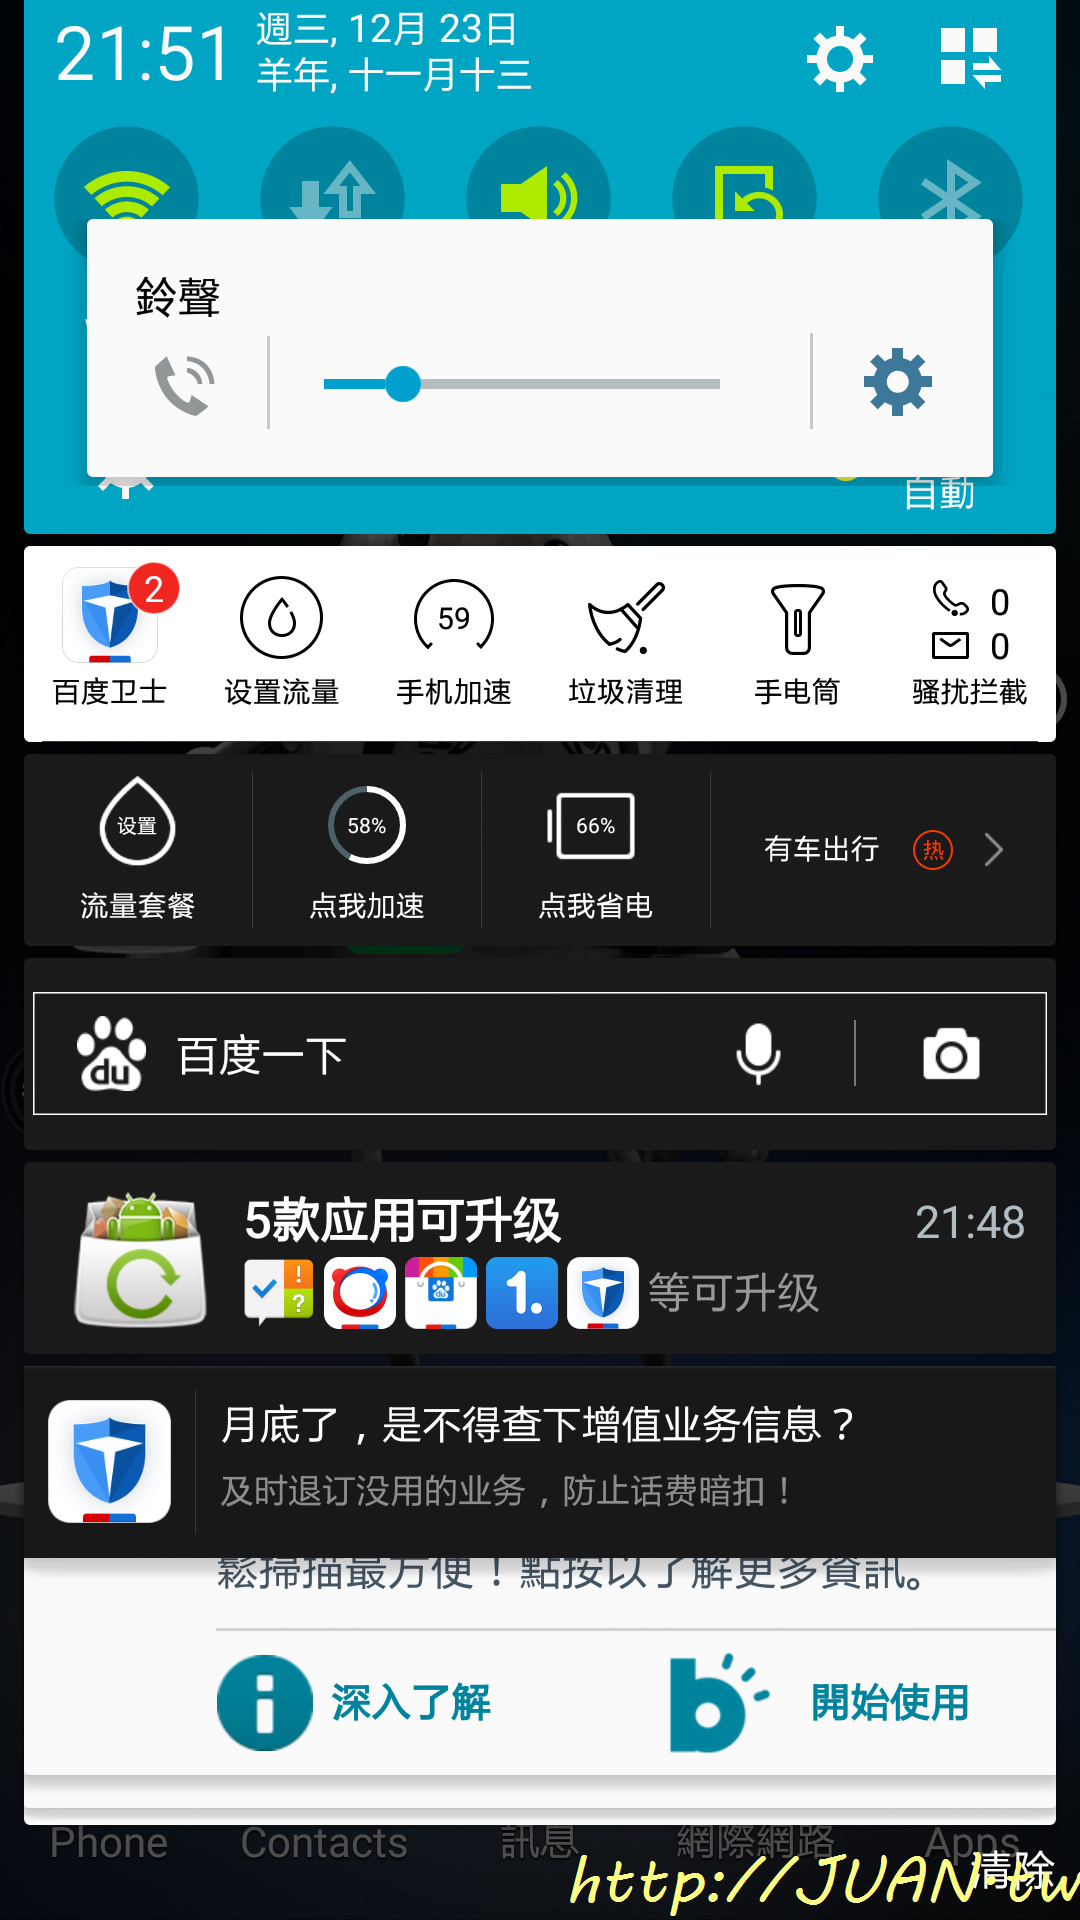 Screenshot_2015-12-23-21-51-31